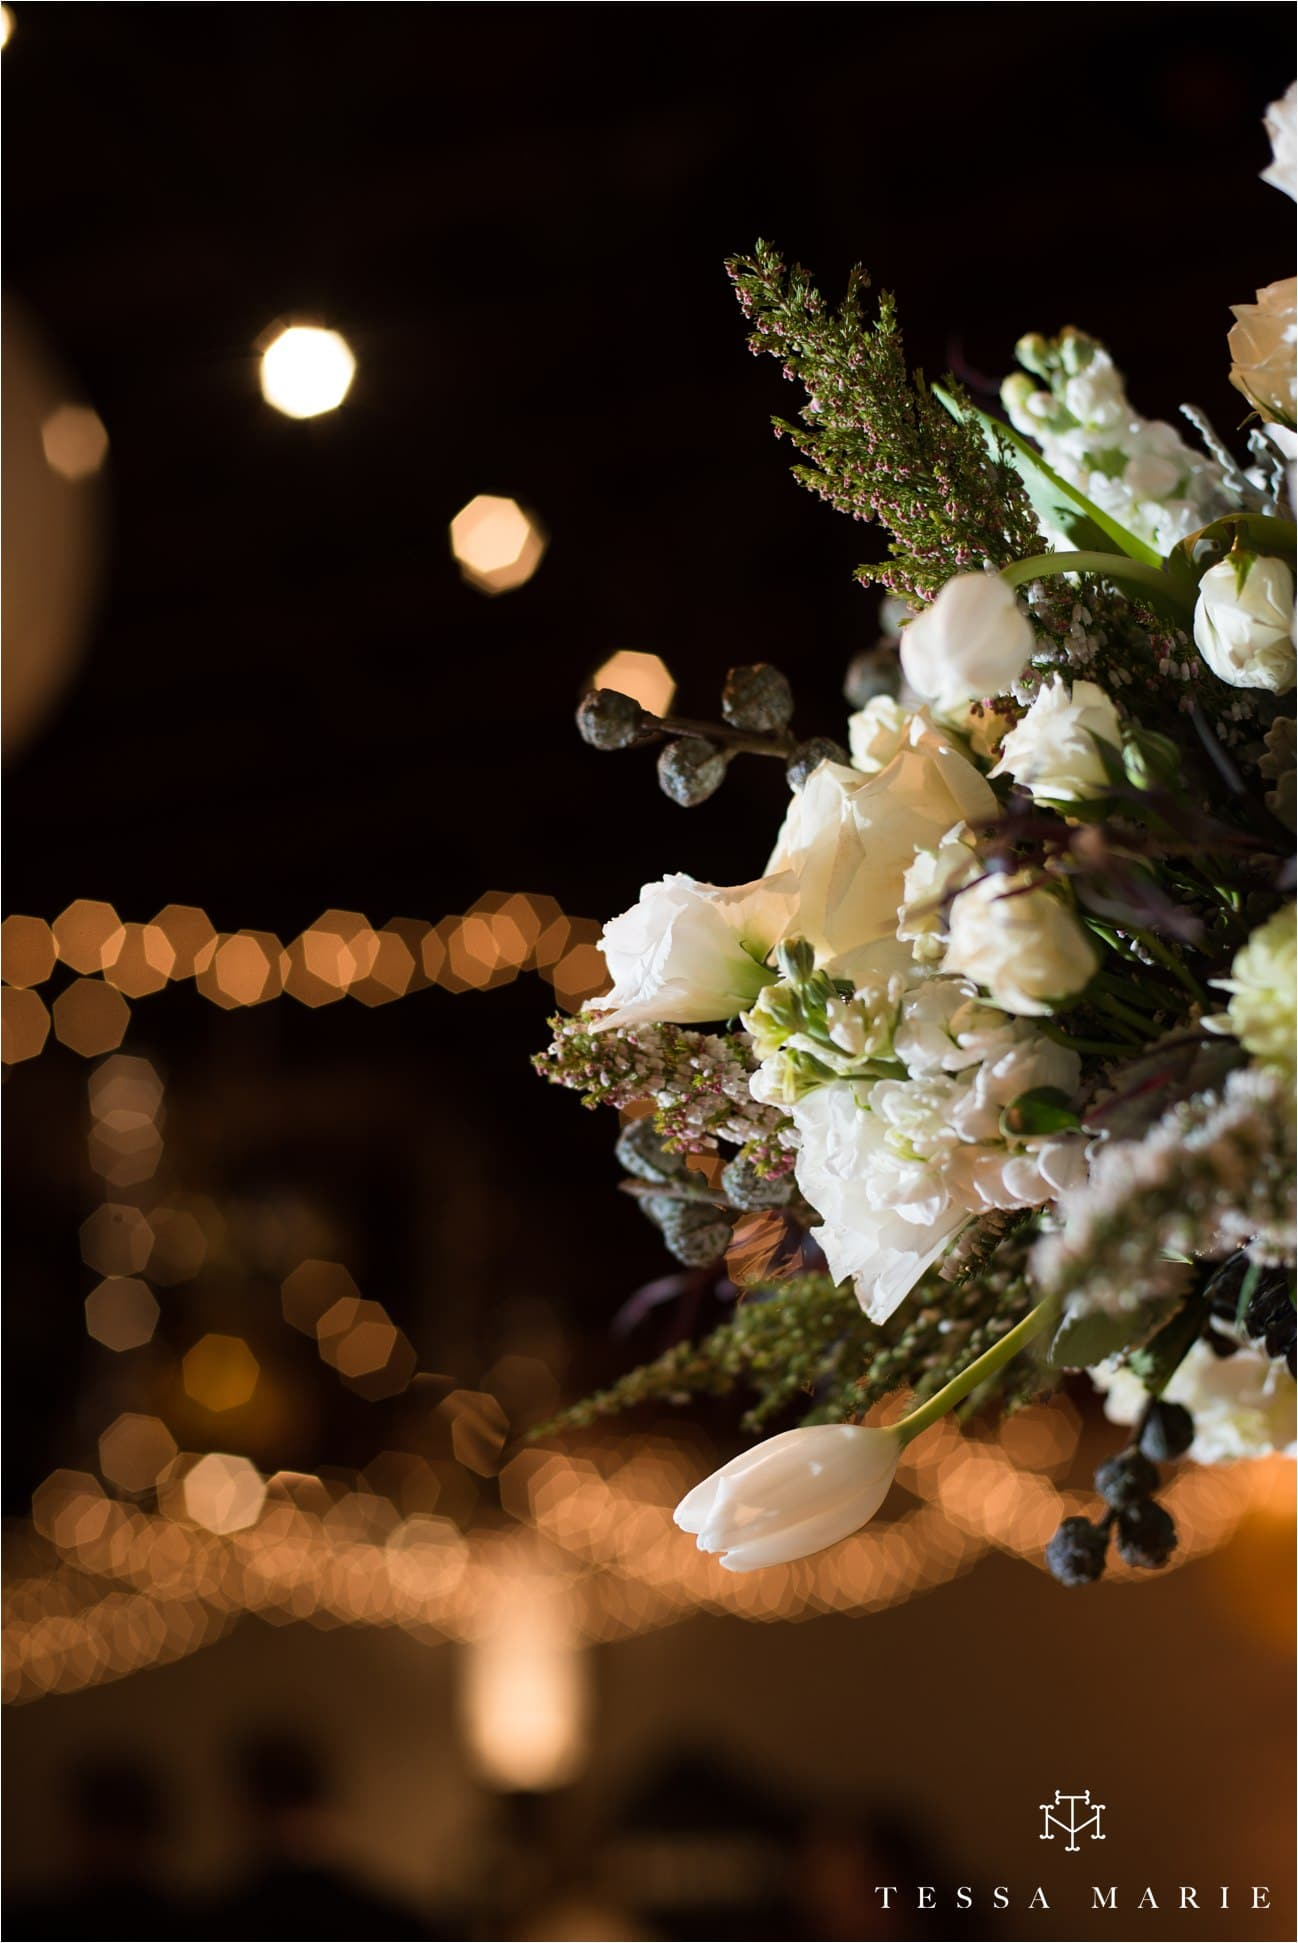 tessa_marie_brickyard_marietta_new_years_wedding_pictures_candid_emotional_wedding_portraits_0109